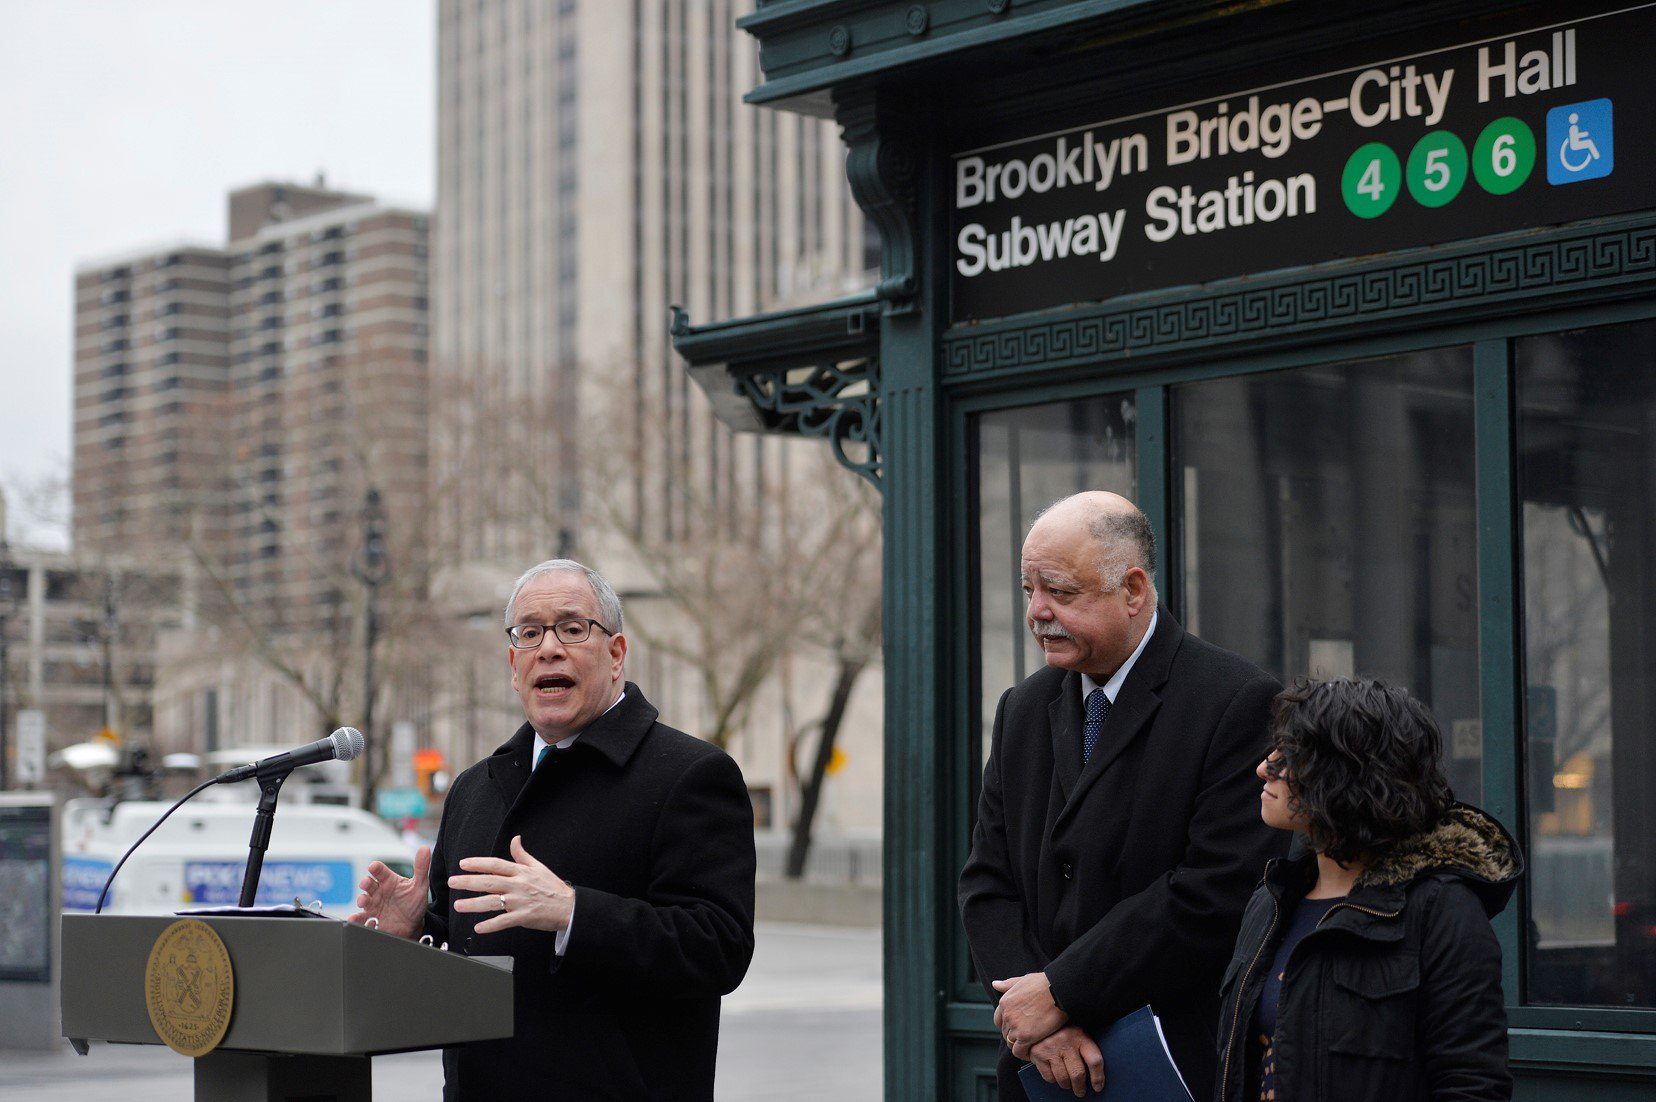 NYC Comptroller Scott M. Stringer joined by the Community Service Society and Riders Alliance.